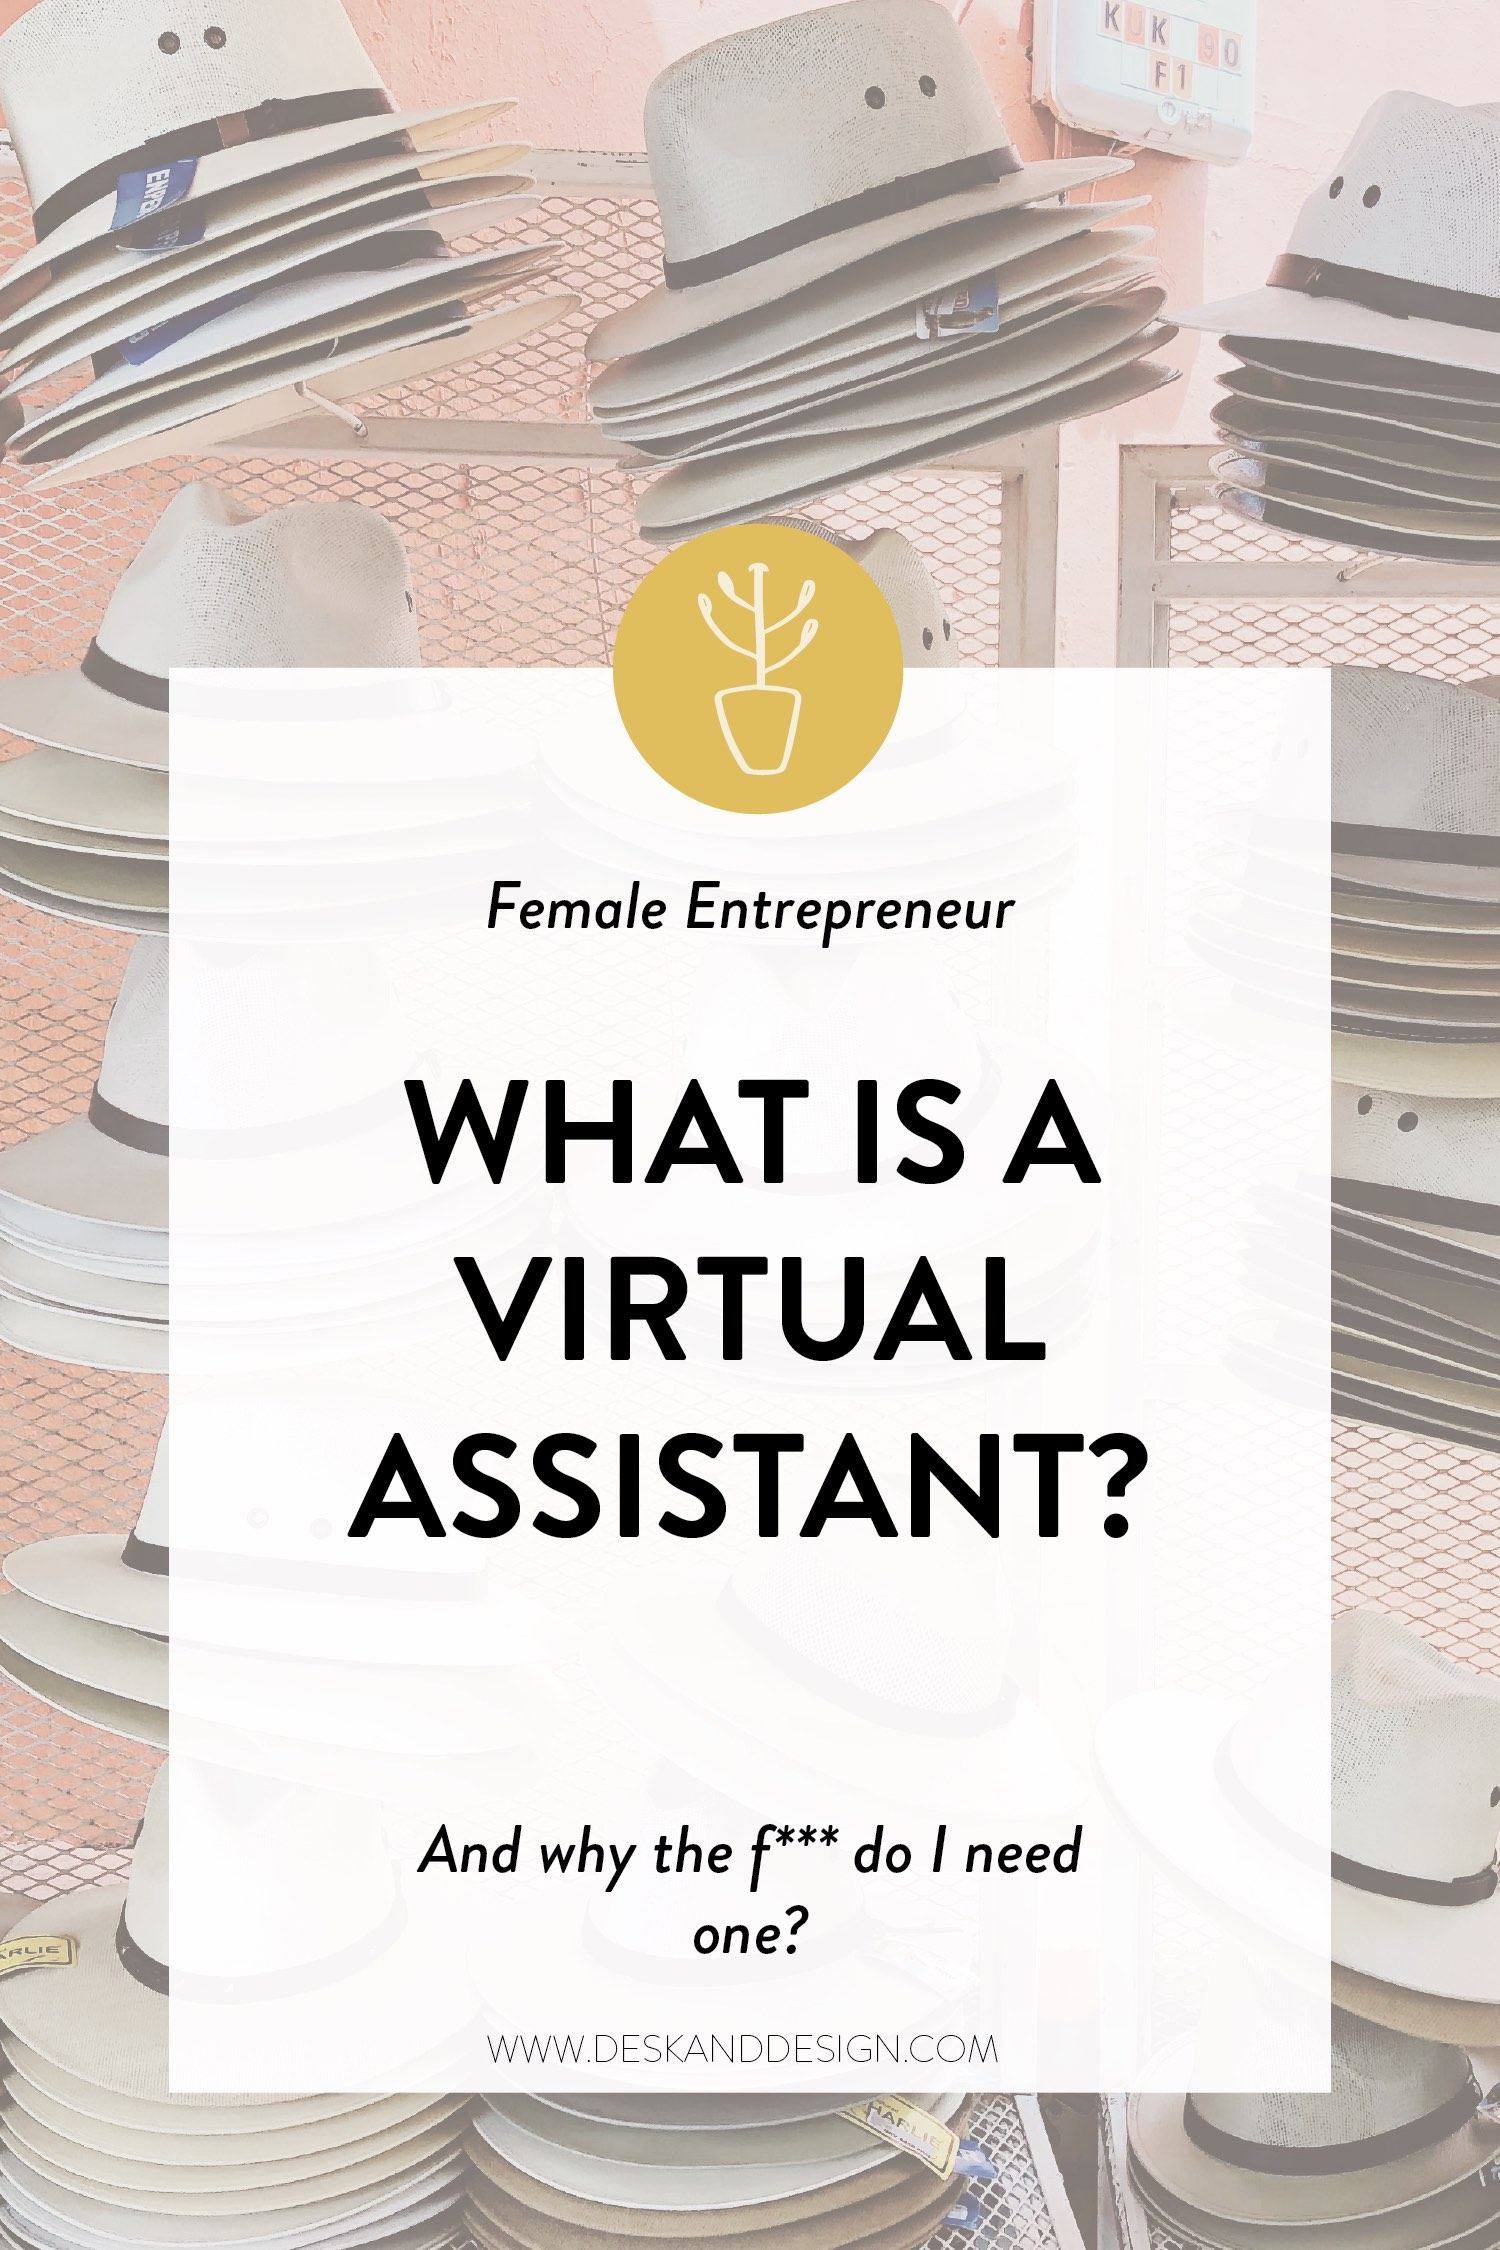 What is a virtual assistant? And why do you need one? Find out why hiring a virtual assistant is giving female entrepreneurs more time in their schedules at www.deskanddesign.com